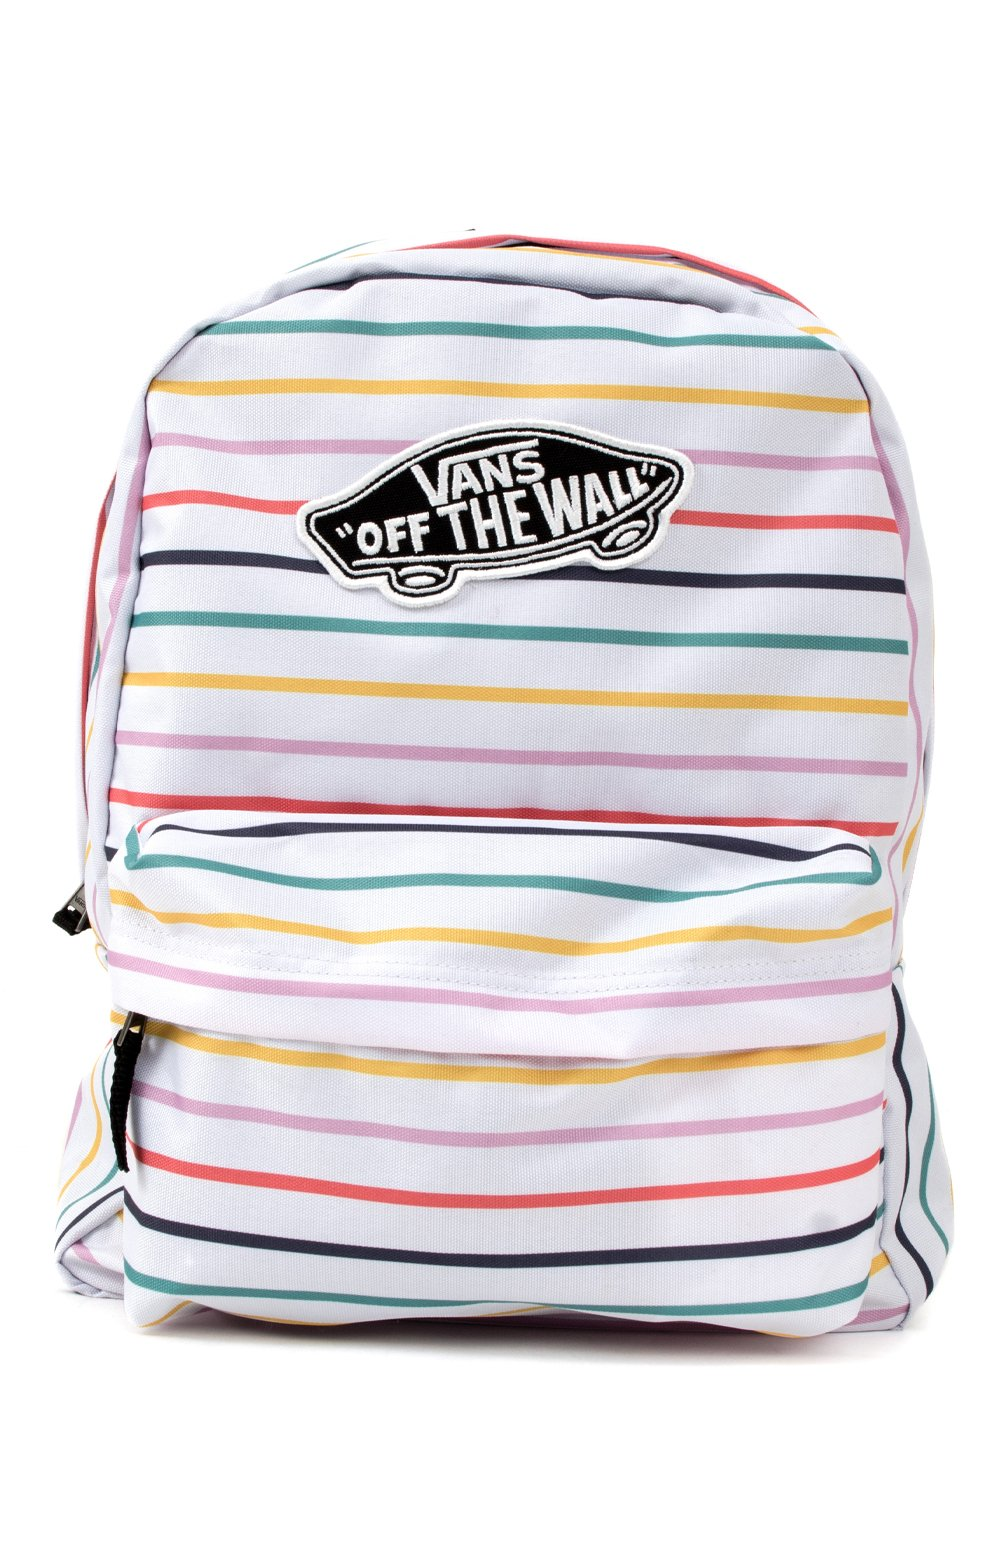 23f2d885ab Realm Backpack - Party Stripe